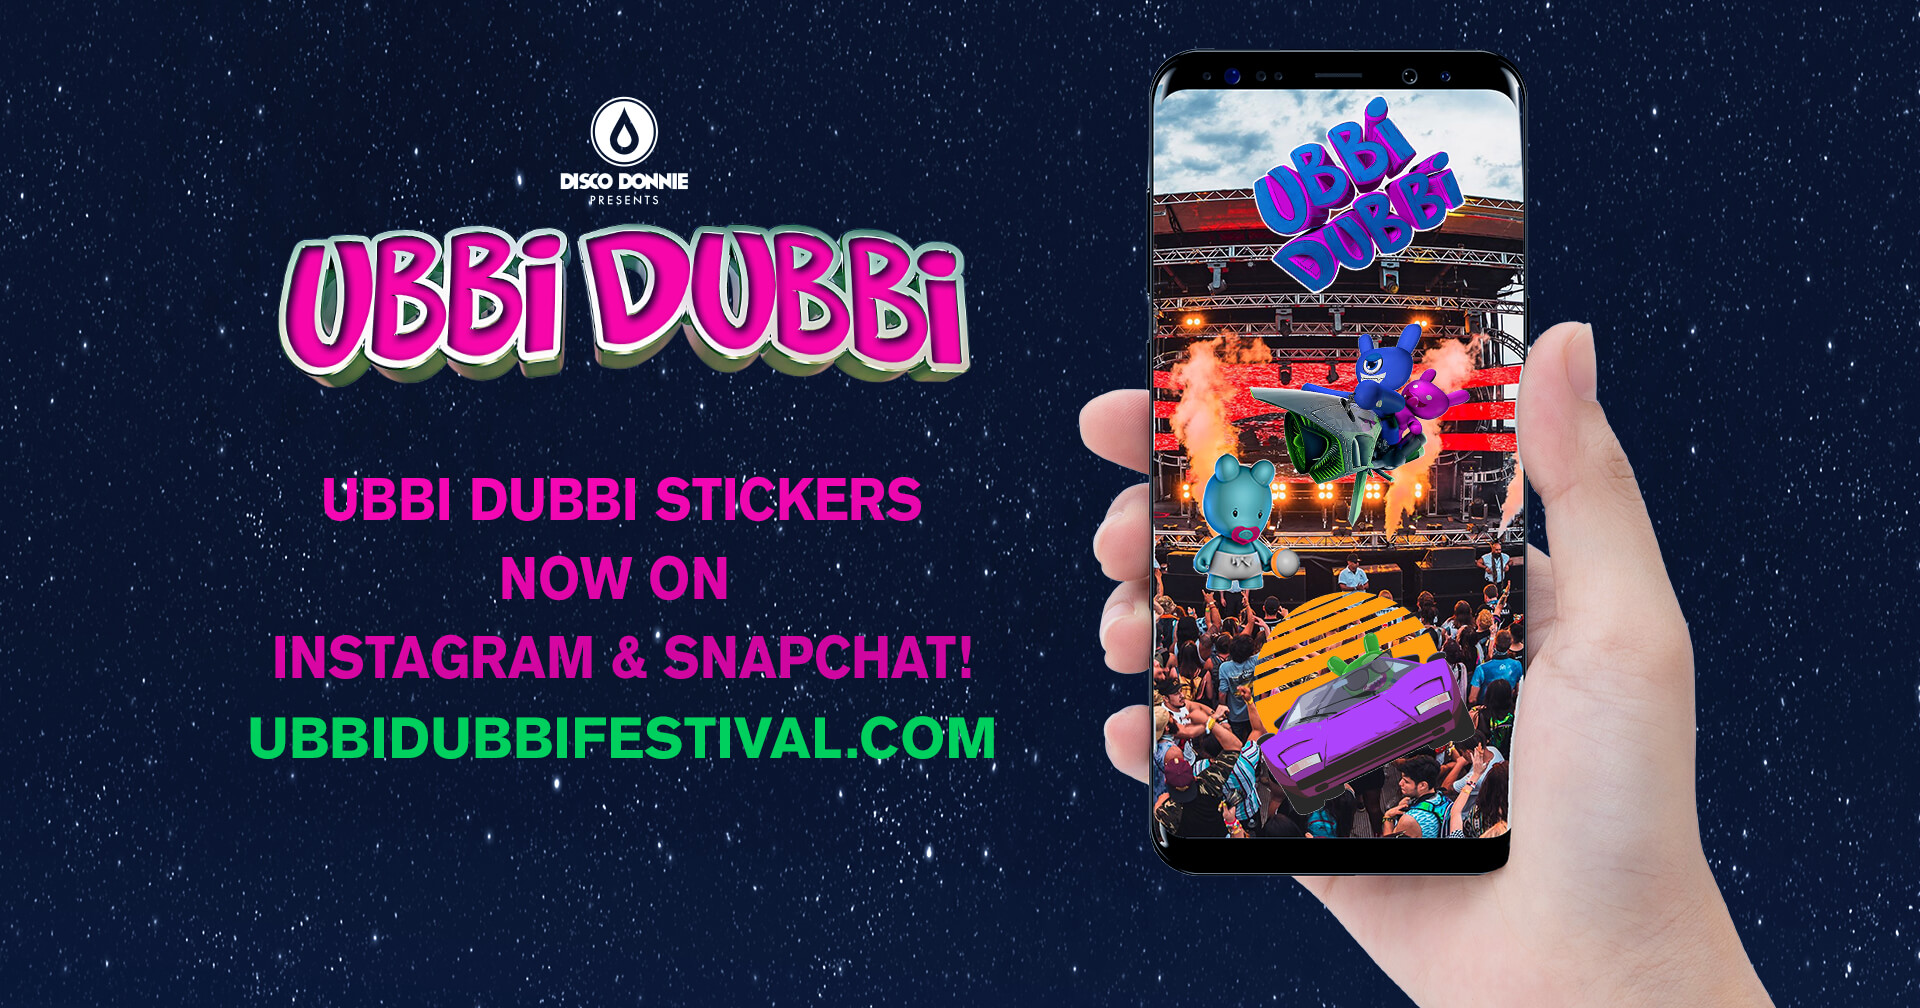 ubbi dubbi stickers on instagram snapchat